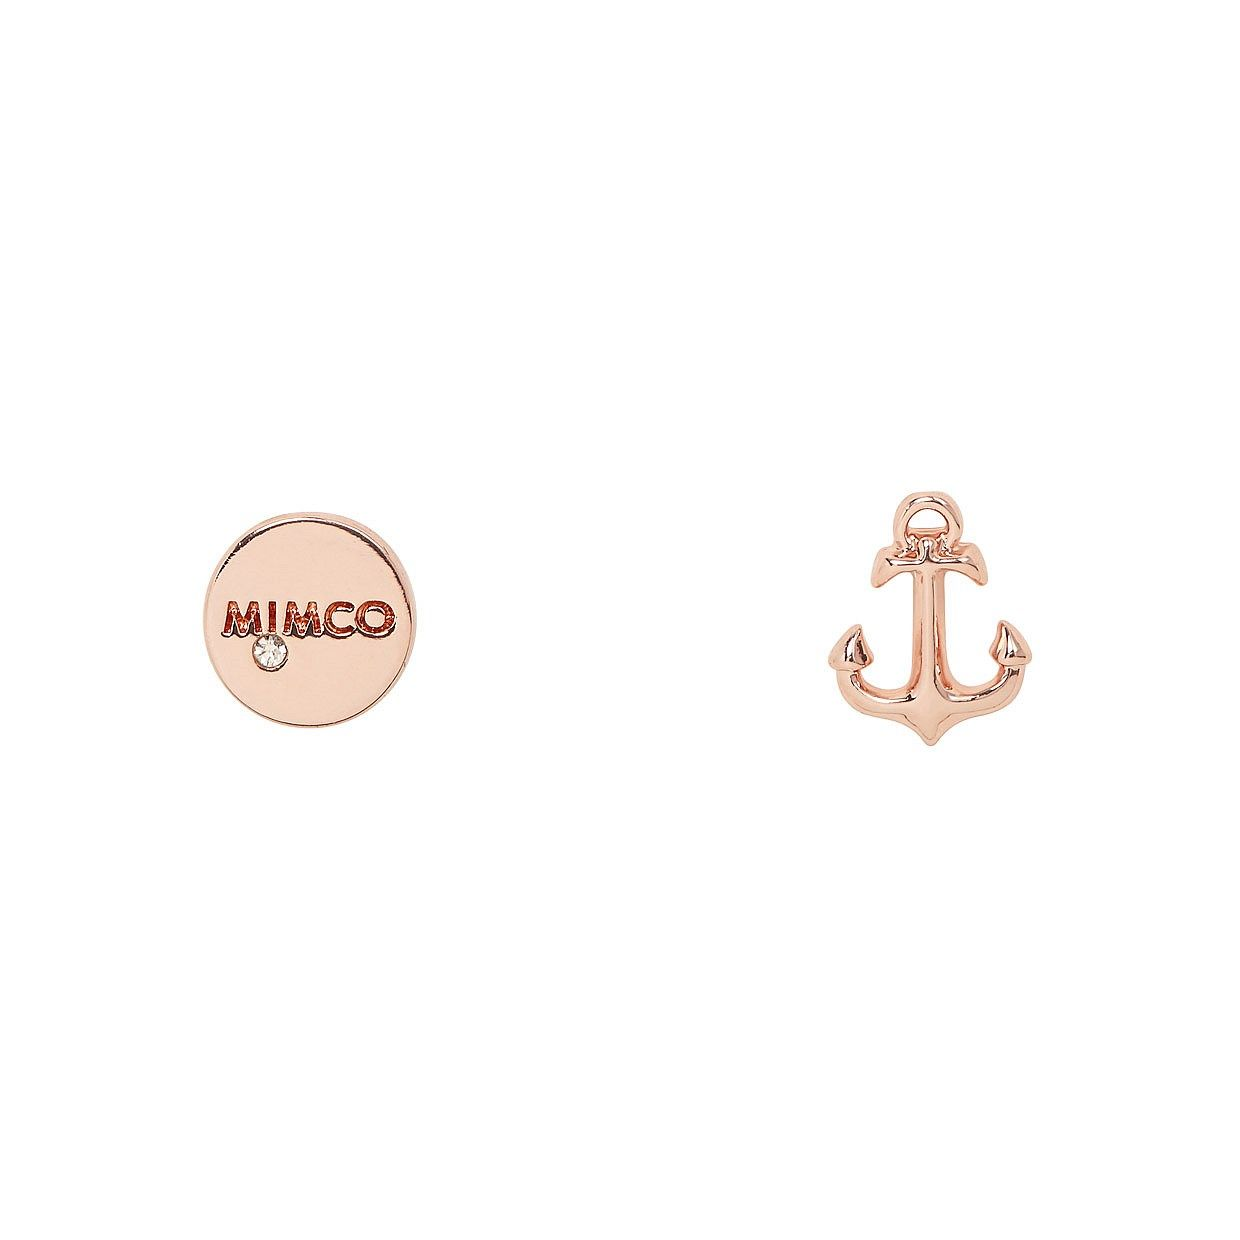 82c83af17 Earrings | Jewellery by Mimco - TAKE TWO ANCHOR STUD | style ...